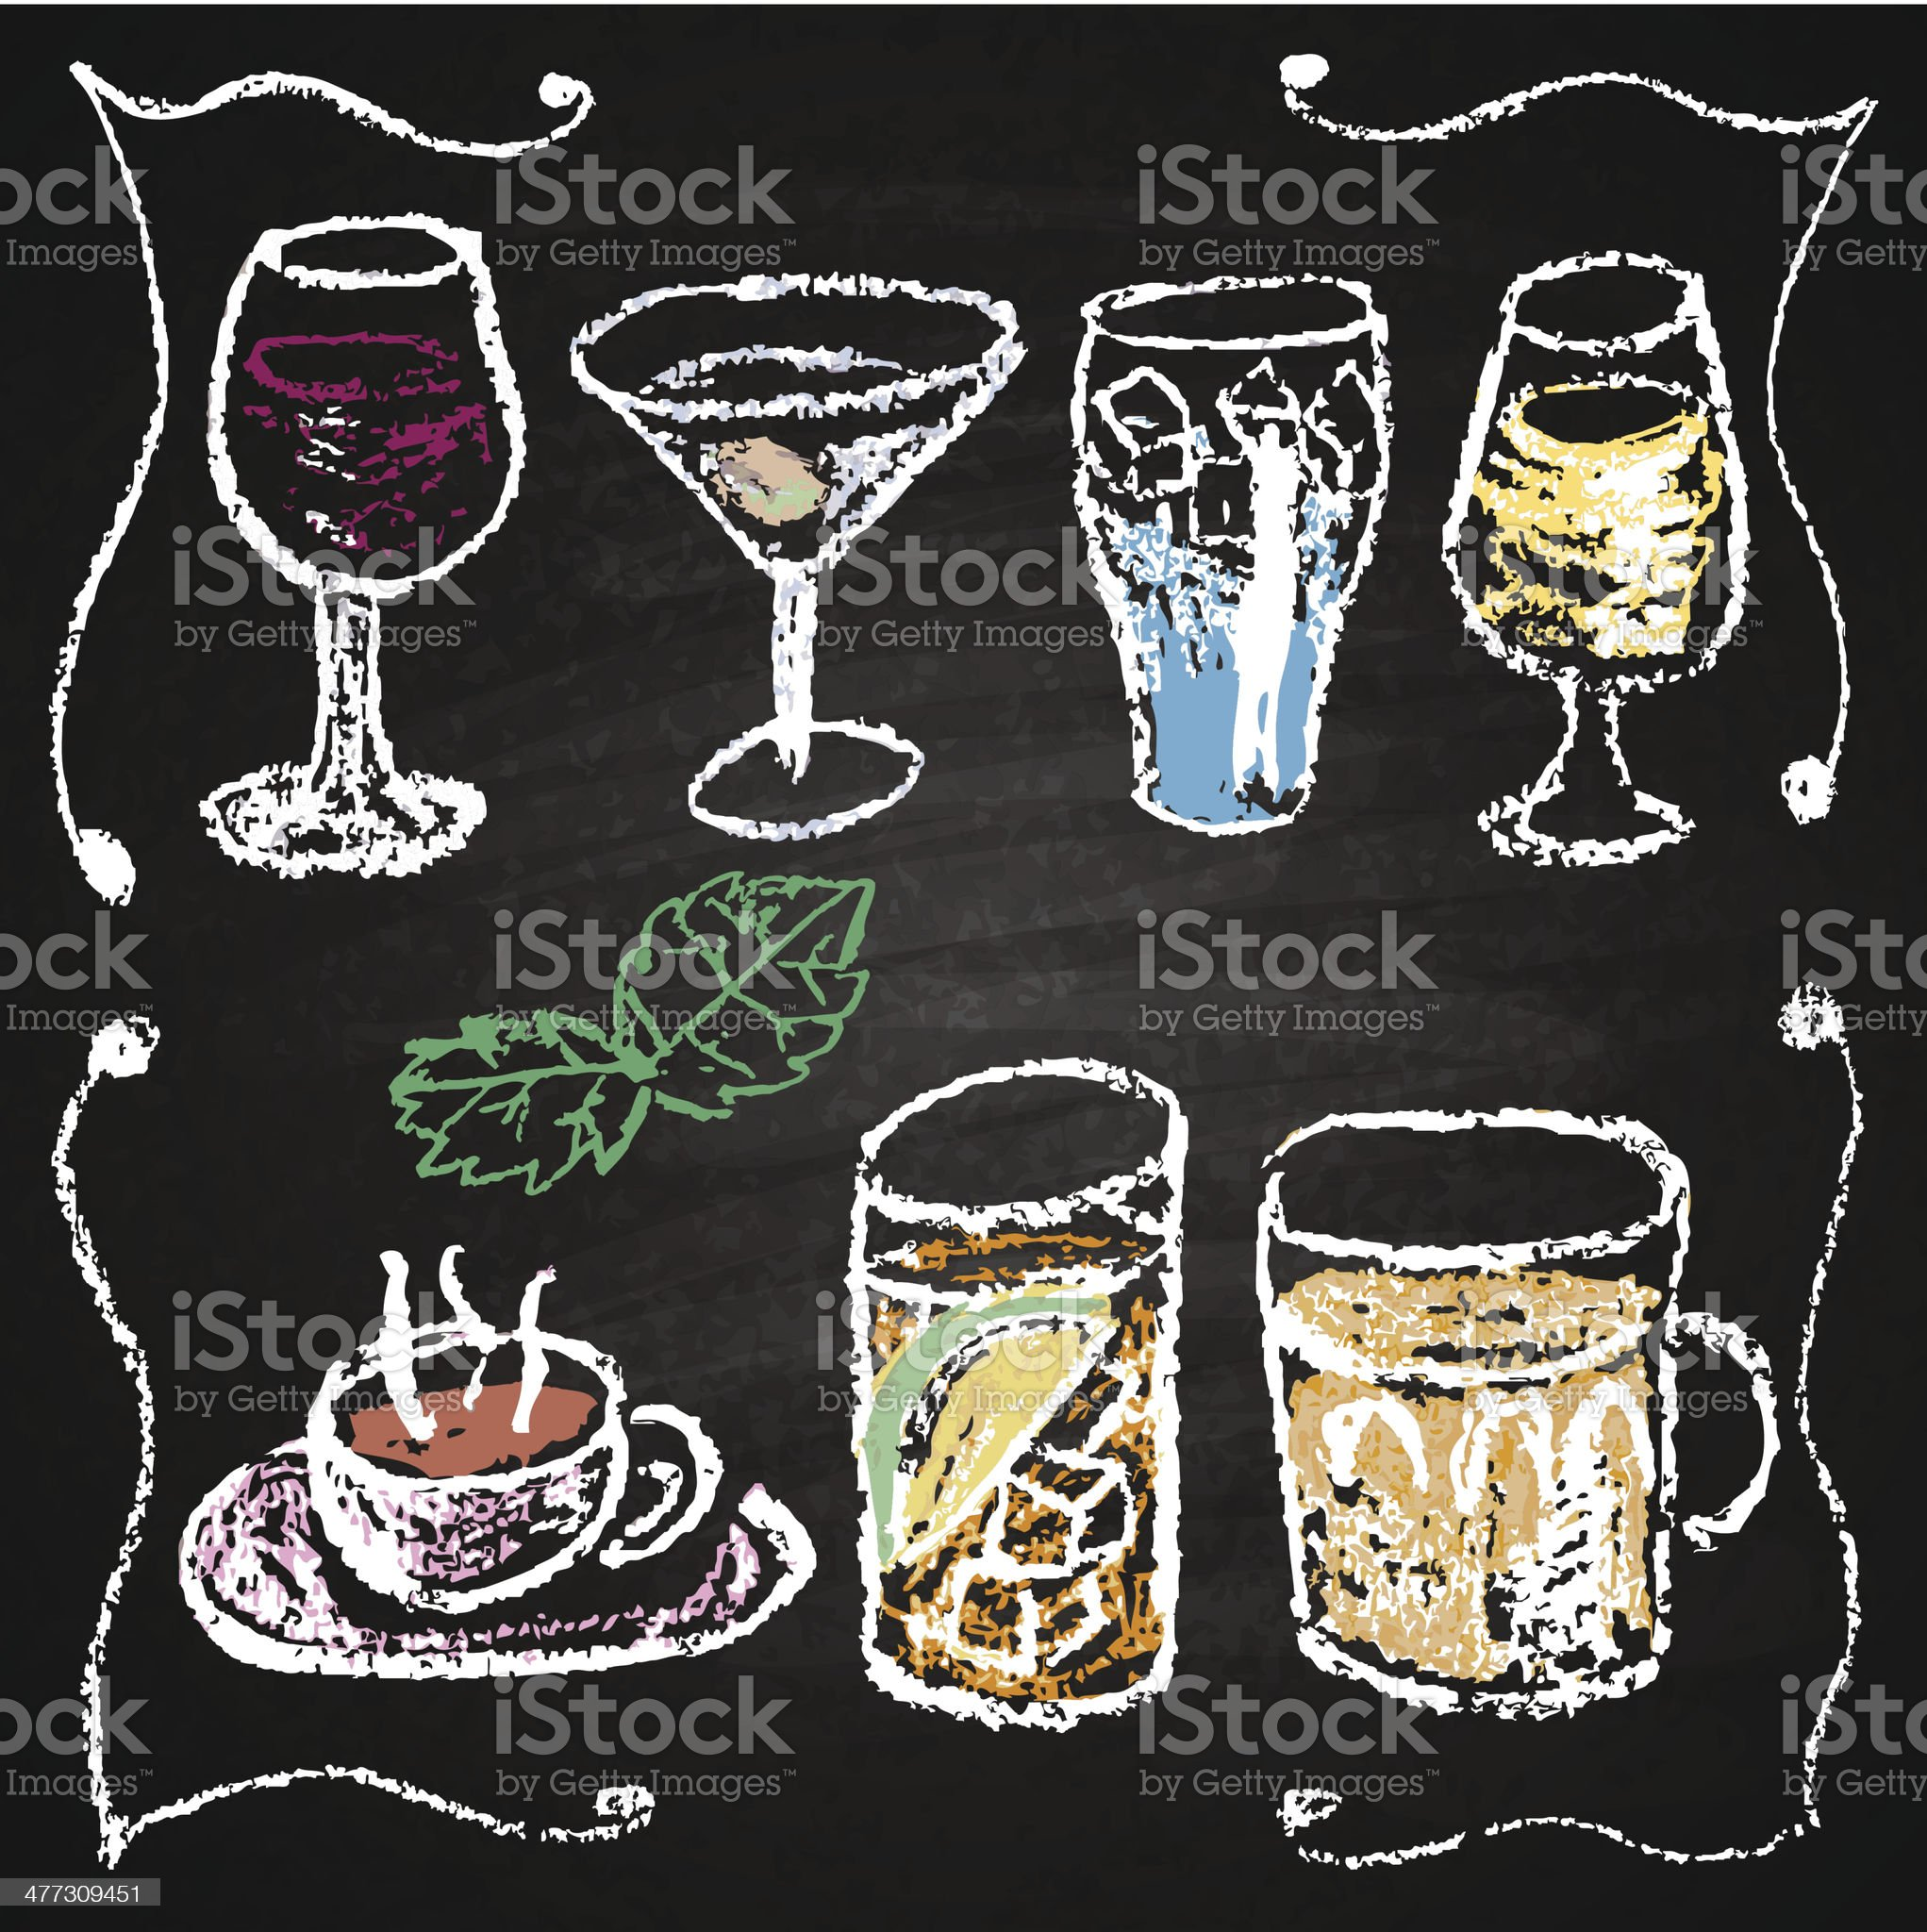 Hand drawn cocktail menu elements. royalty-free stock vector art